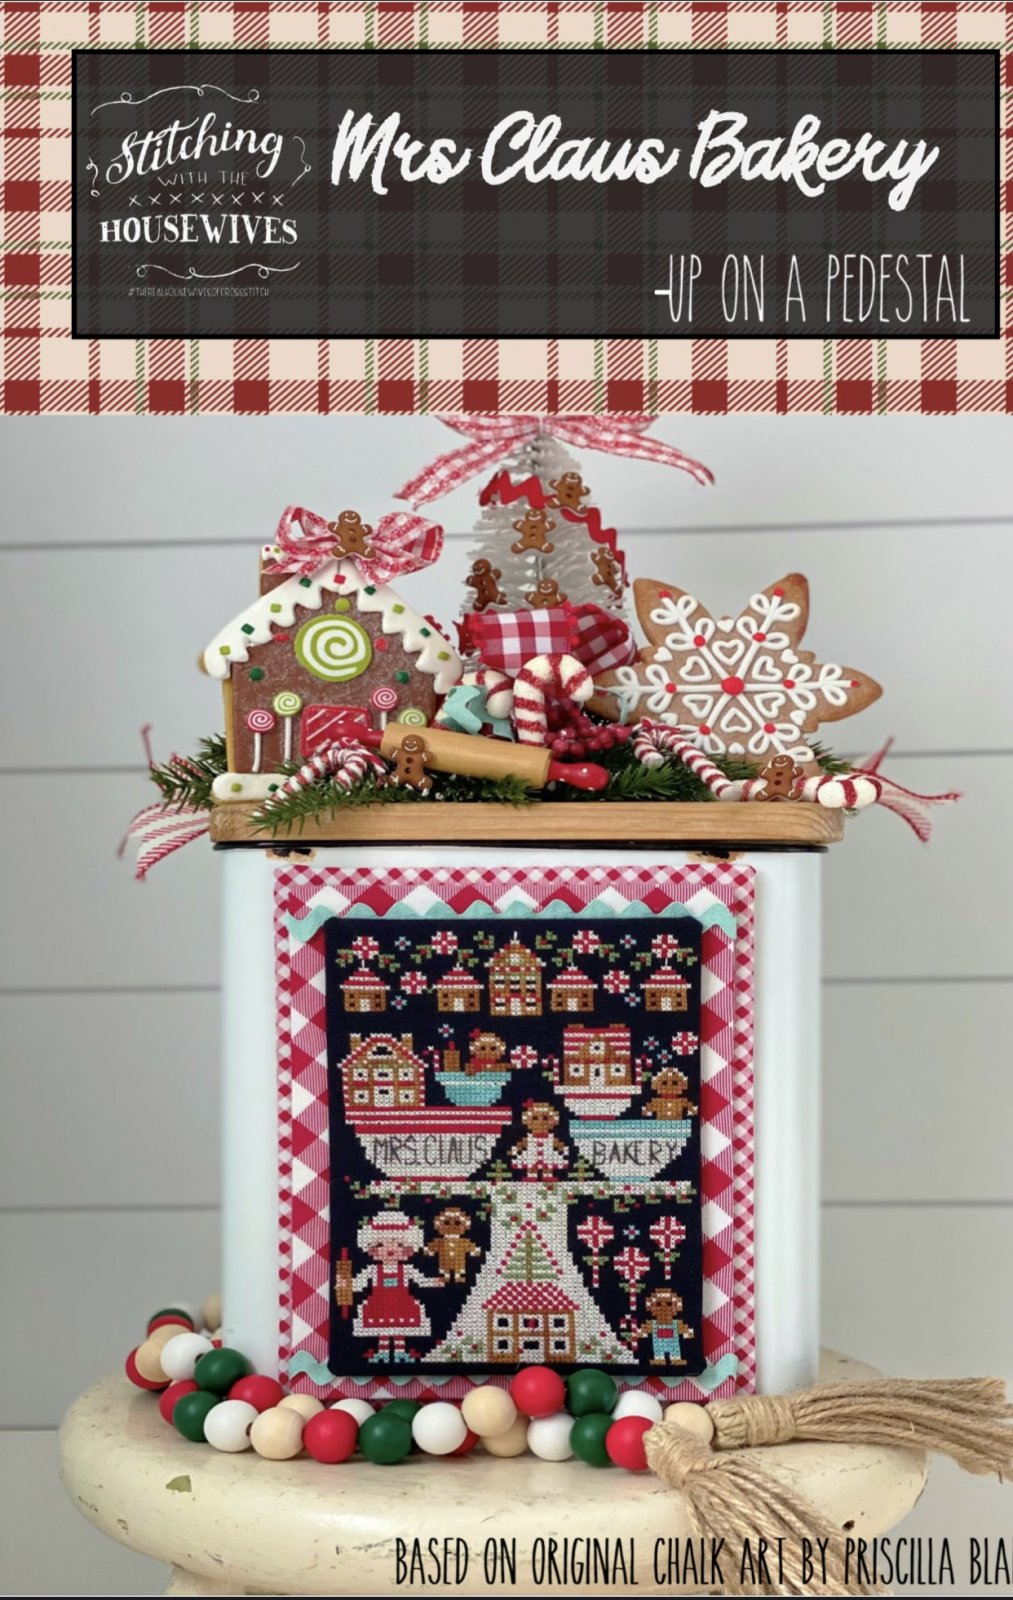 Mrs. Claus Bakery